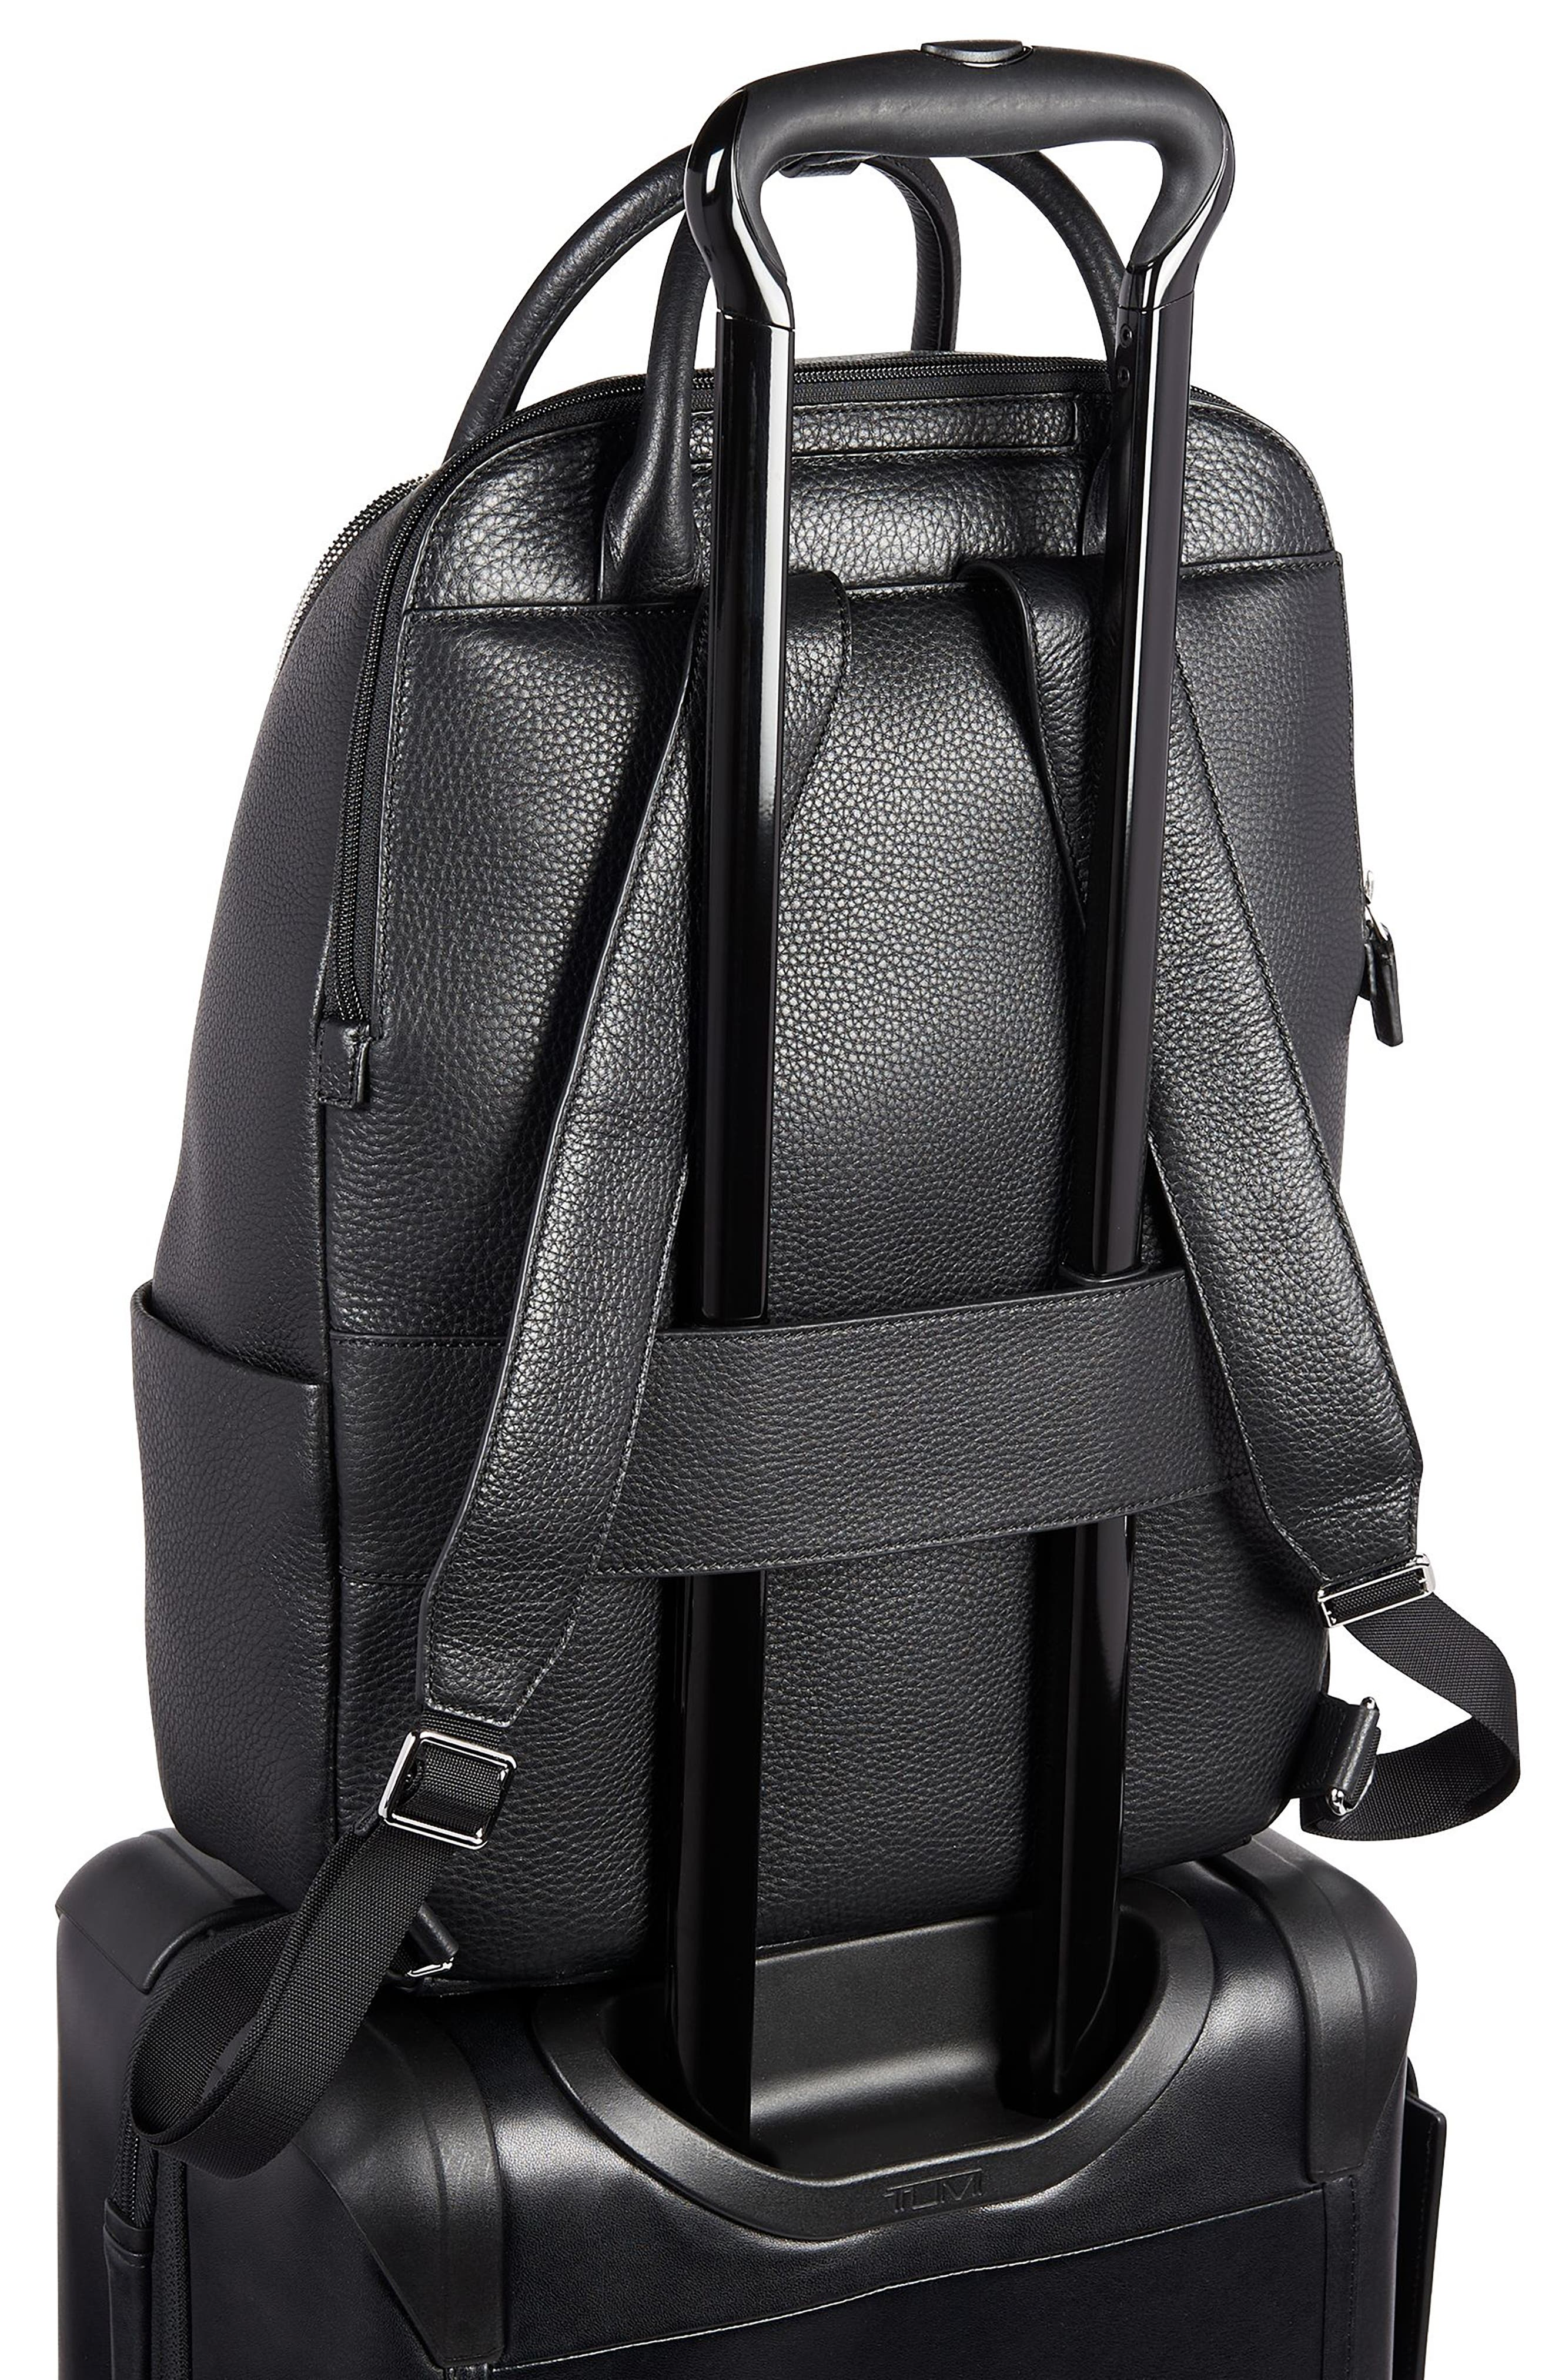 TUMI,                             Stanton Indra Commuter Backpack,                             Alternate thumbnail 6, color,                             001